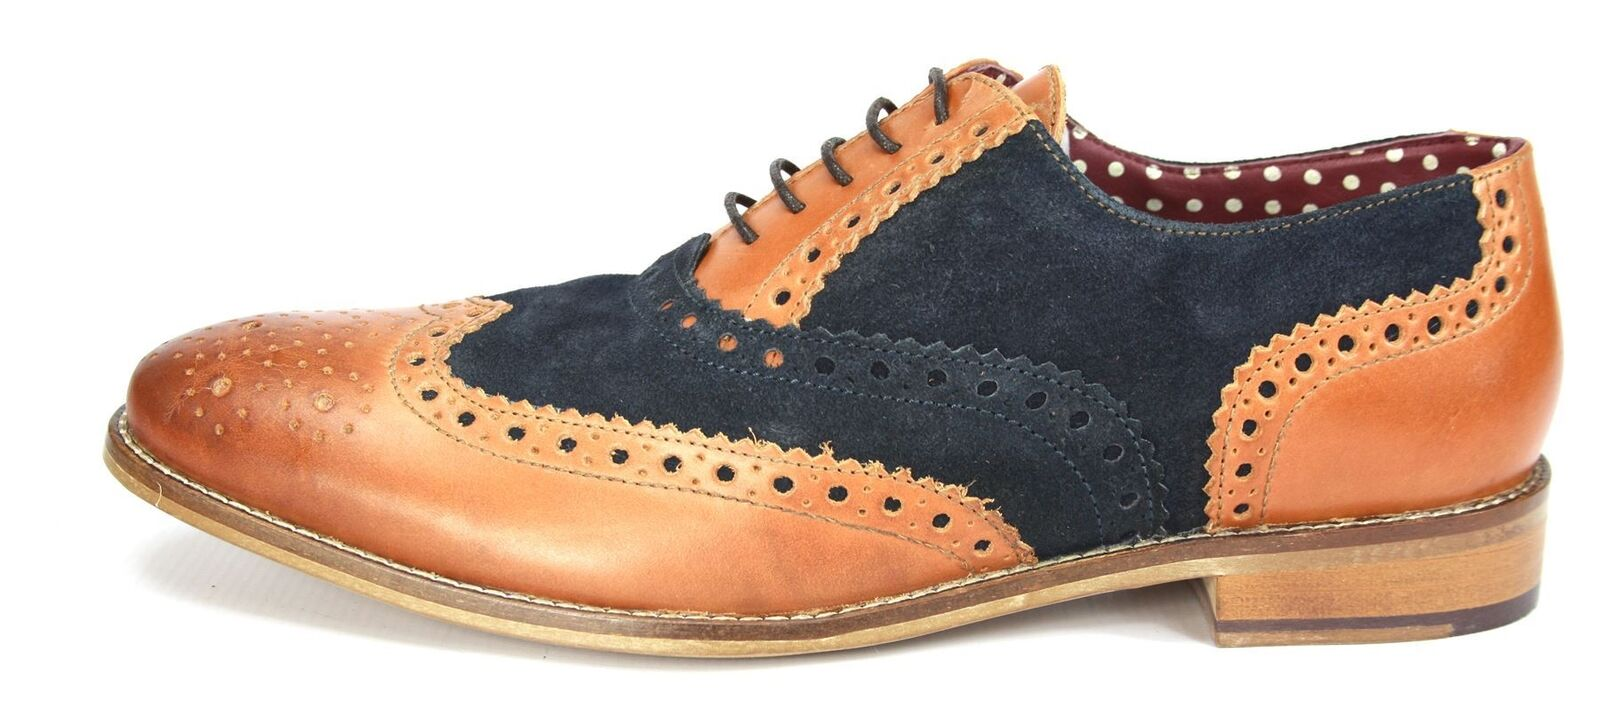 London Brogues Gatsby Tan /  Navy Lace Up Brogues  / Uomo Leder Round Toe Schuhes 7fdf3c